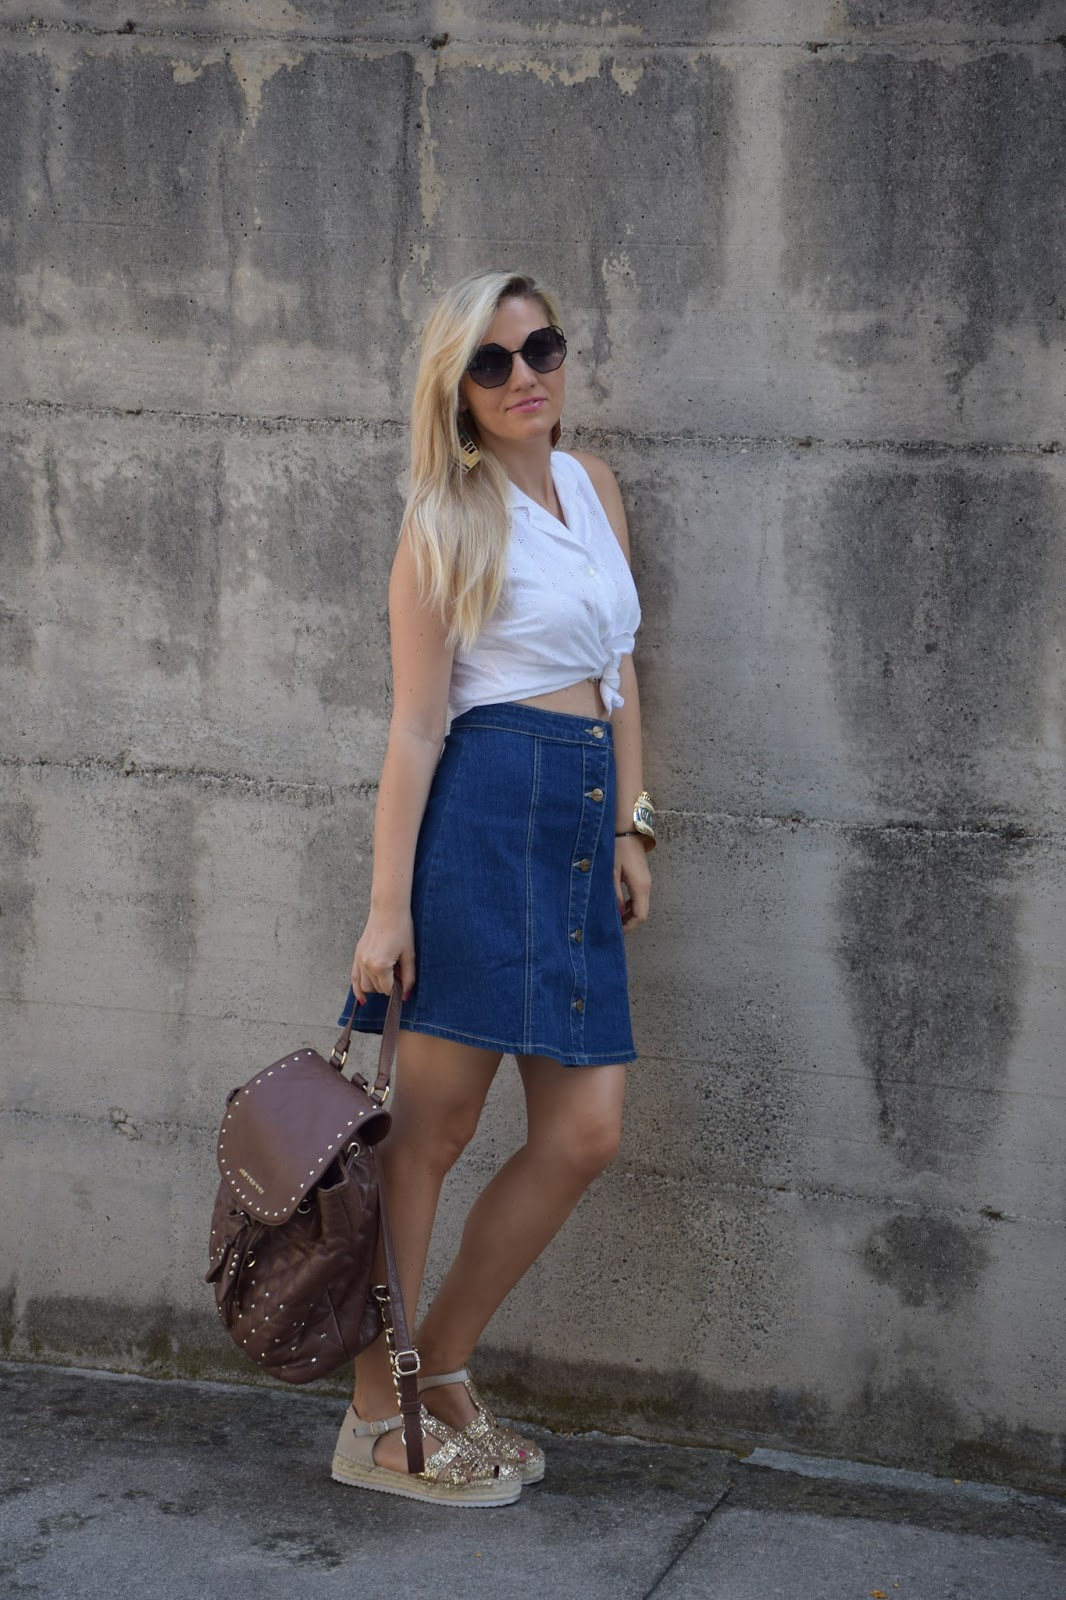 info for 08bf9 74504 Color-Block By FelyM.: OUTFIT: DENIM SKIRT AND WHITE SHIRT ...